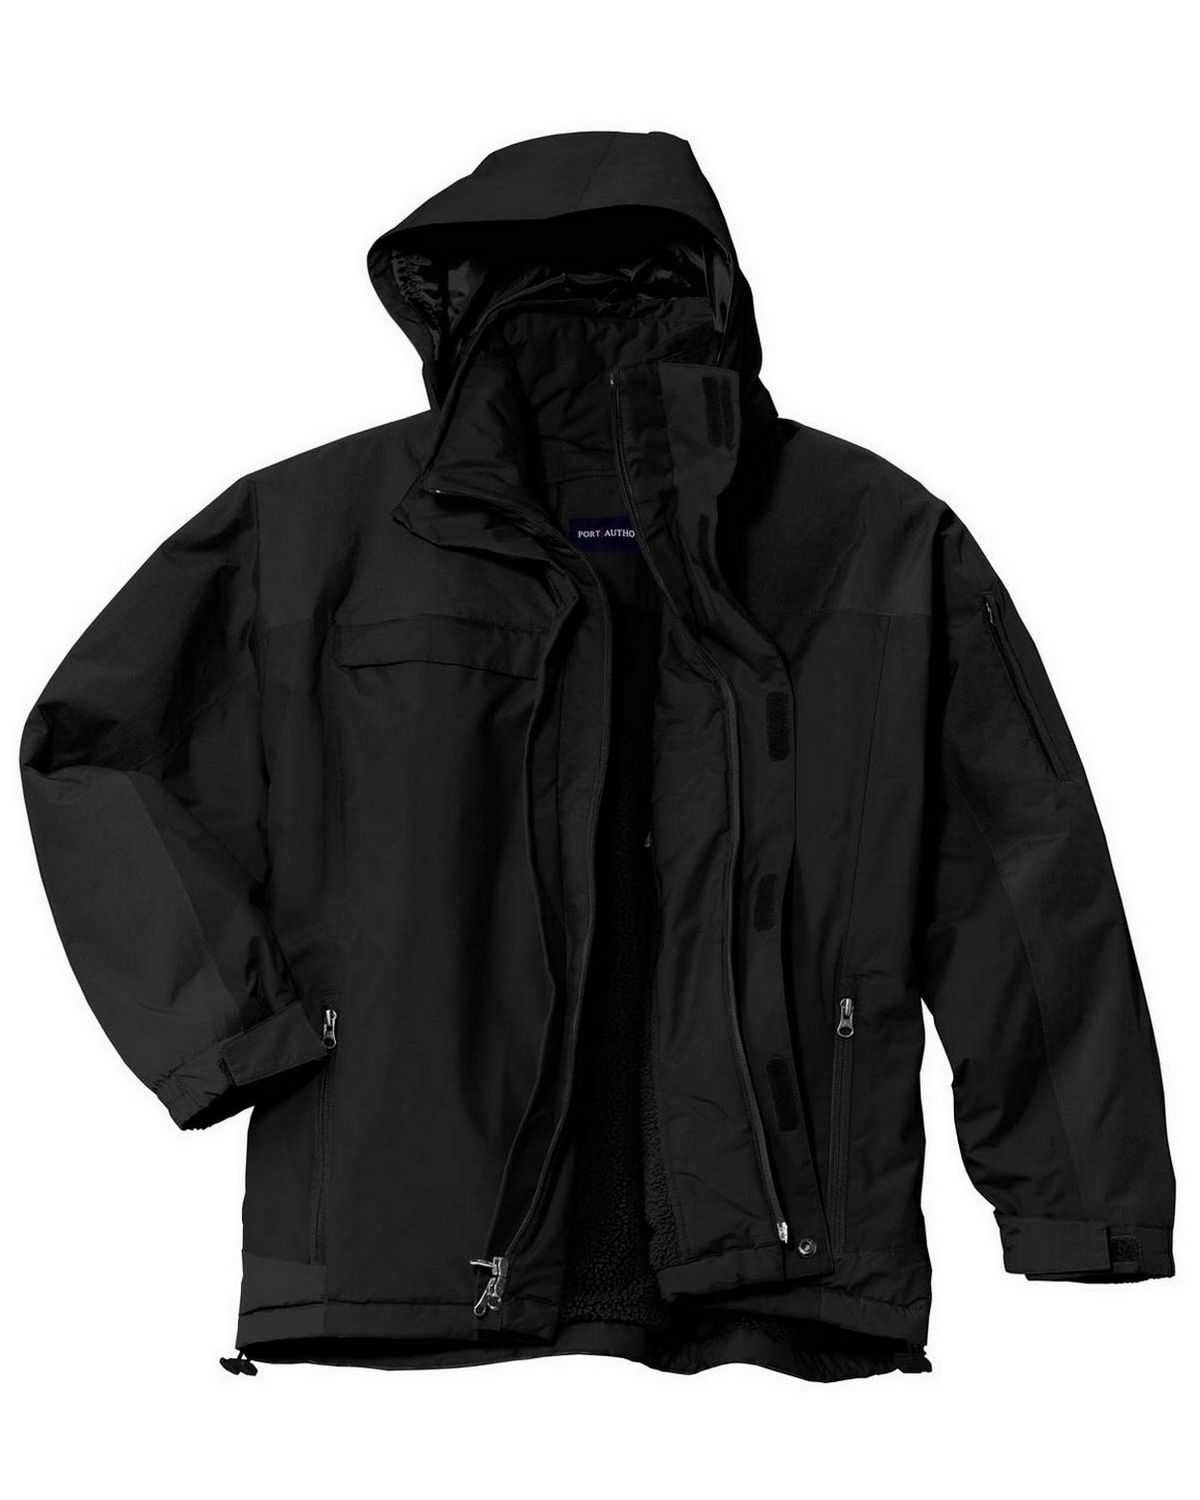 Port Authority J792 Nootka Jacket - Engine Red/Black - S J792